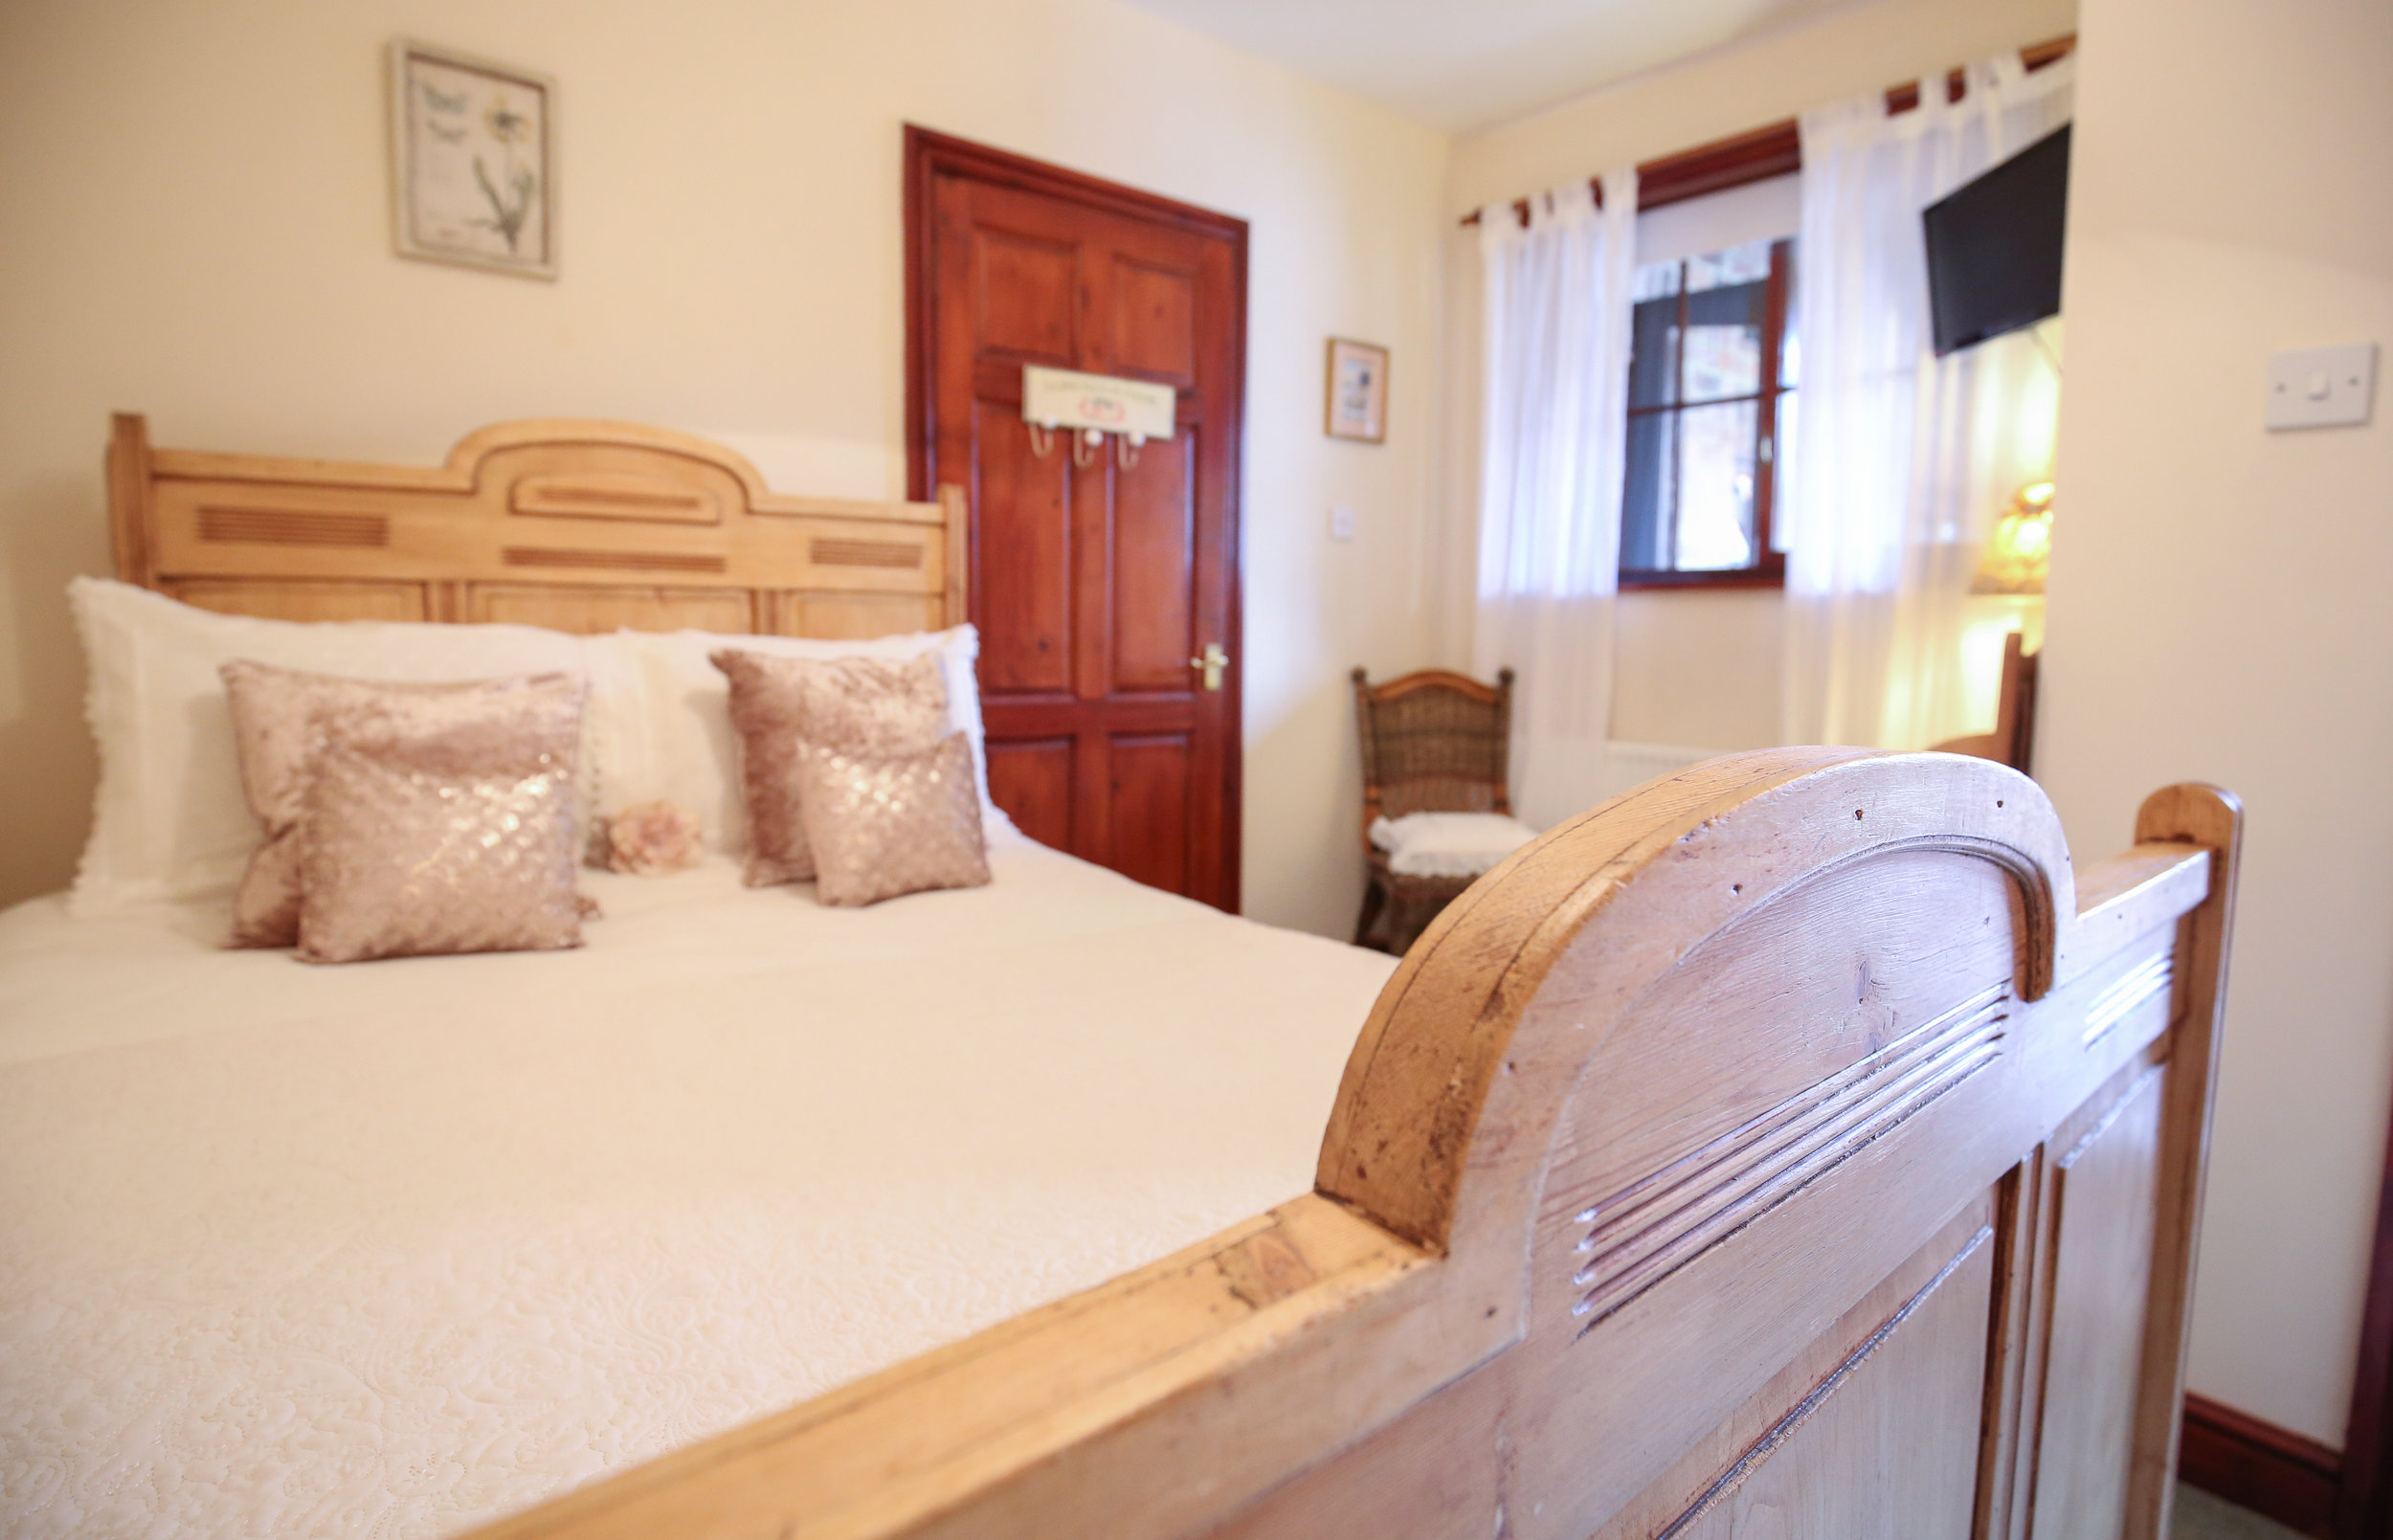 Room 4 - Room 4 is situated on the second floor of the old workshops, and features an en-suite shower. A small, cosy single, it is great for a solo adventures.